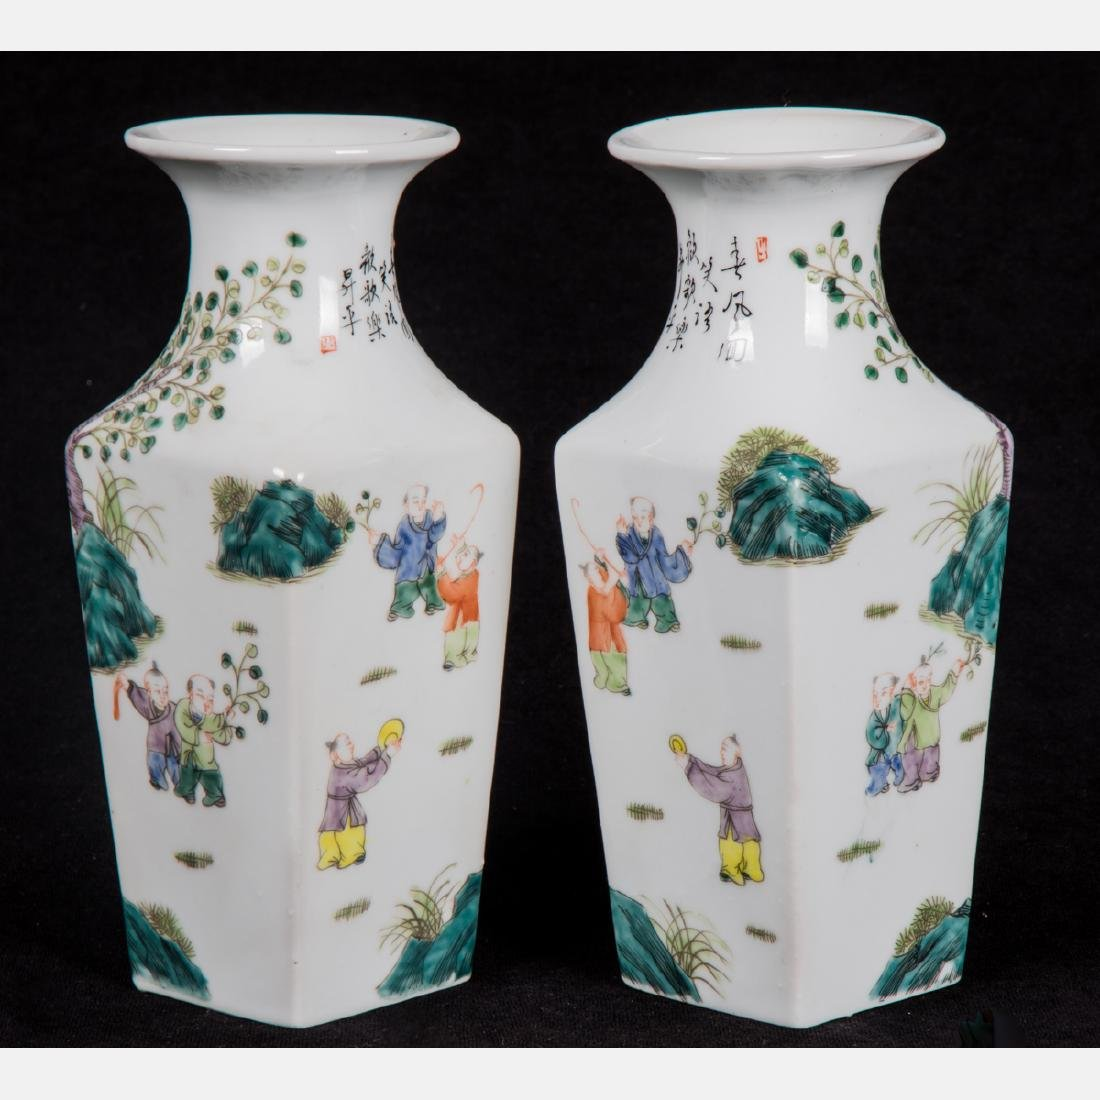 A Pair of Chinese Painted Porcelain Vases, 20th